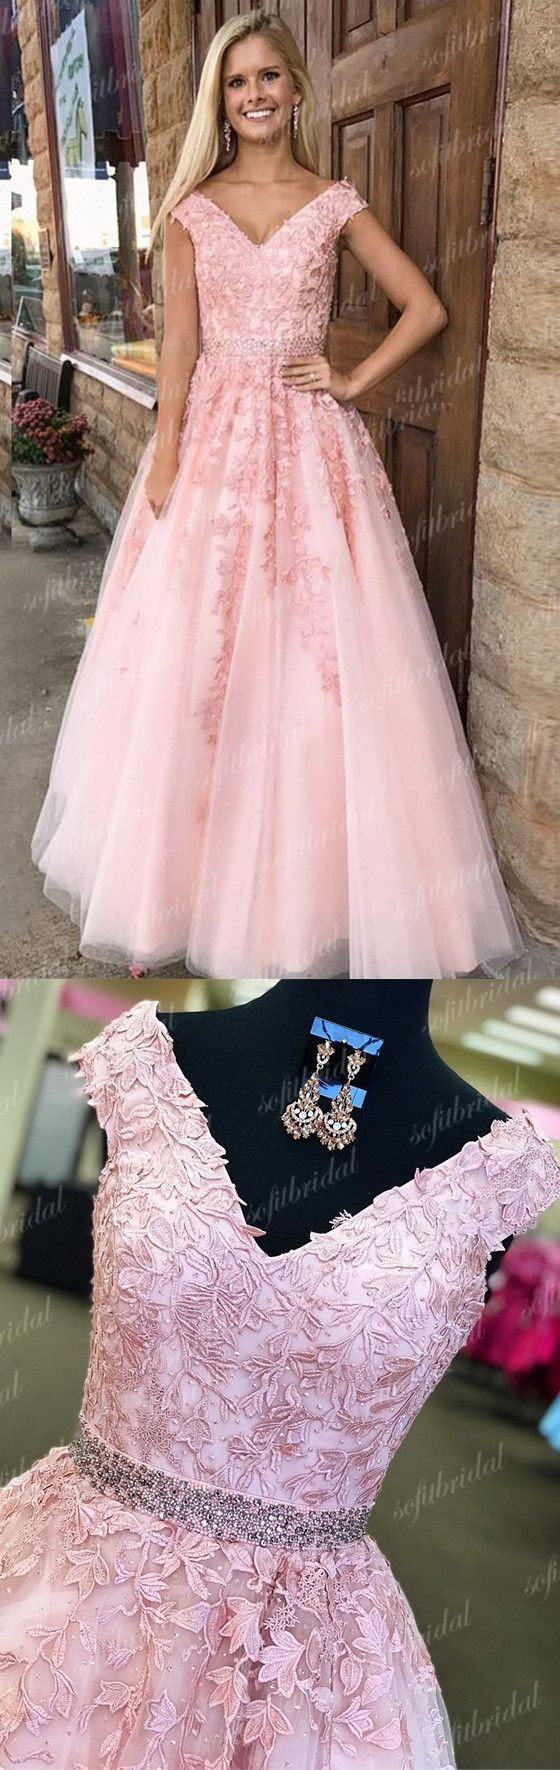 V-neck Pink Lace A-line Beaded Prom Dresses, Lovely Prom Dresses ...